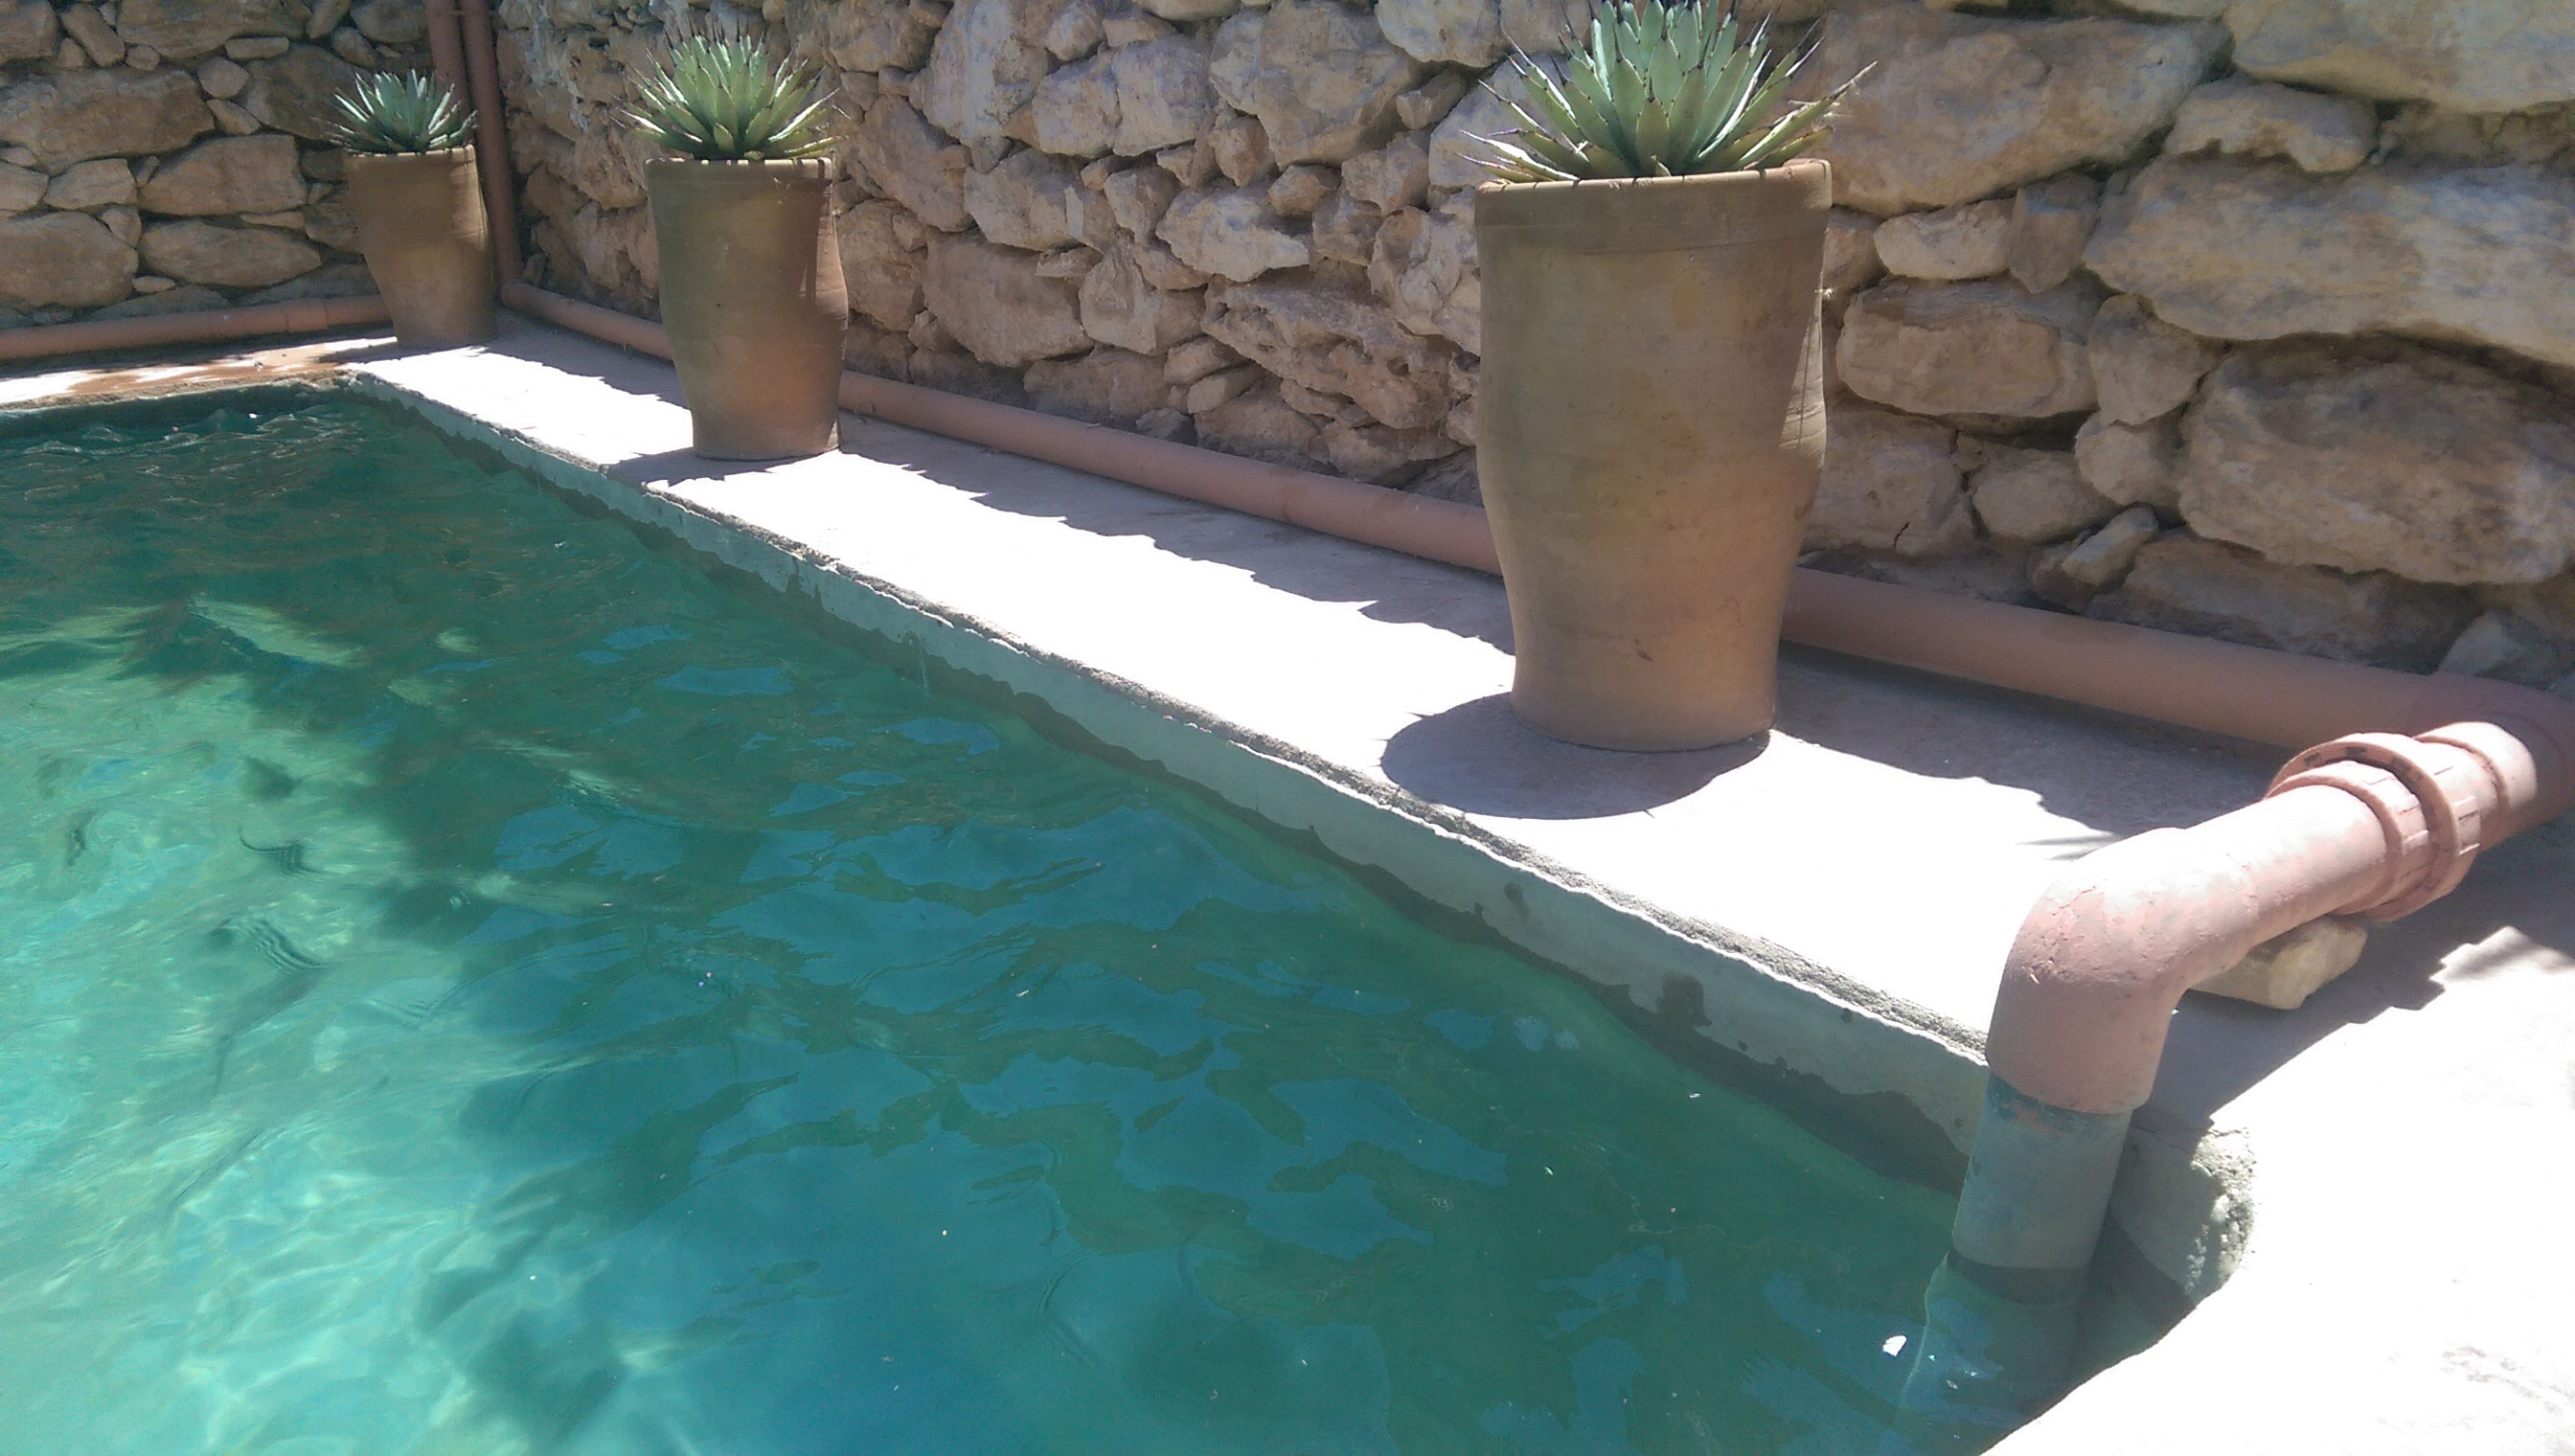 Top 10 tips for building an affordable diy natural pool for How to design a pool